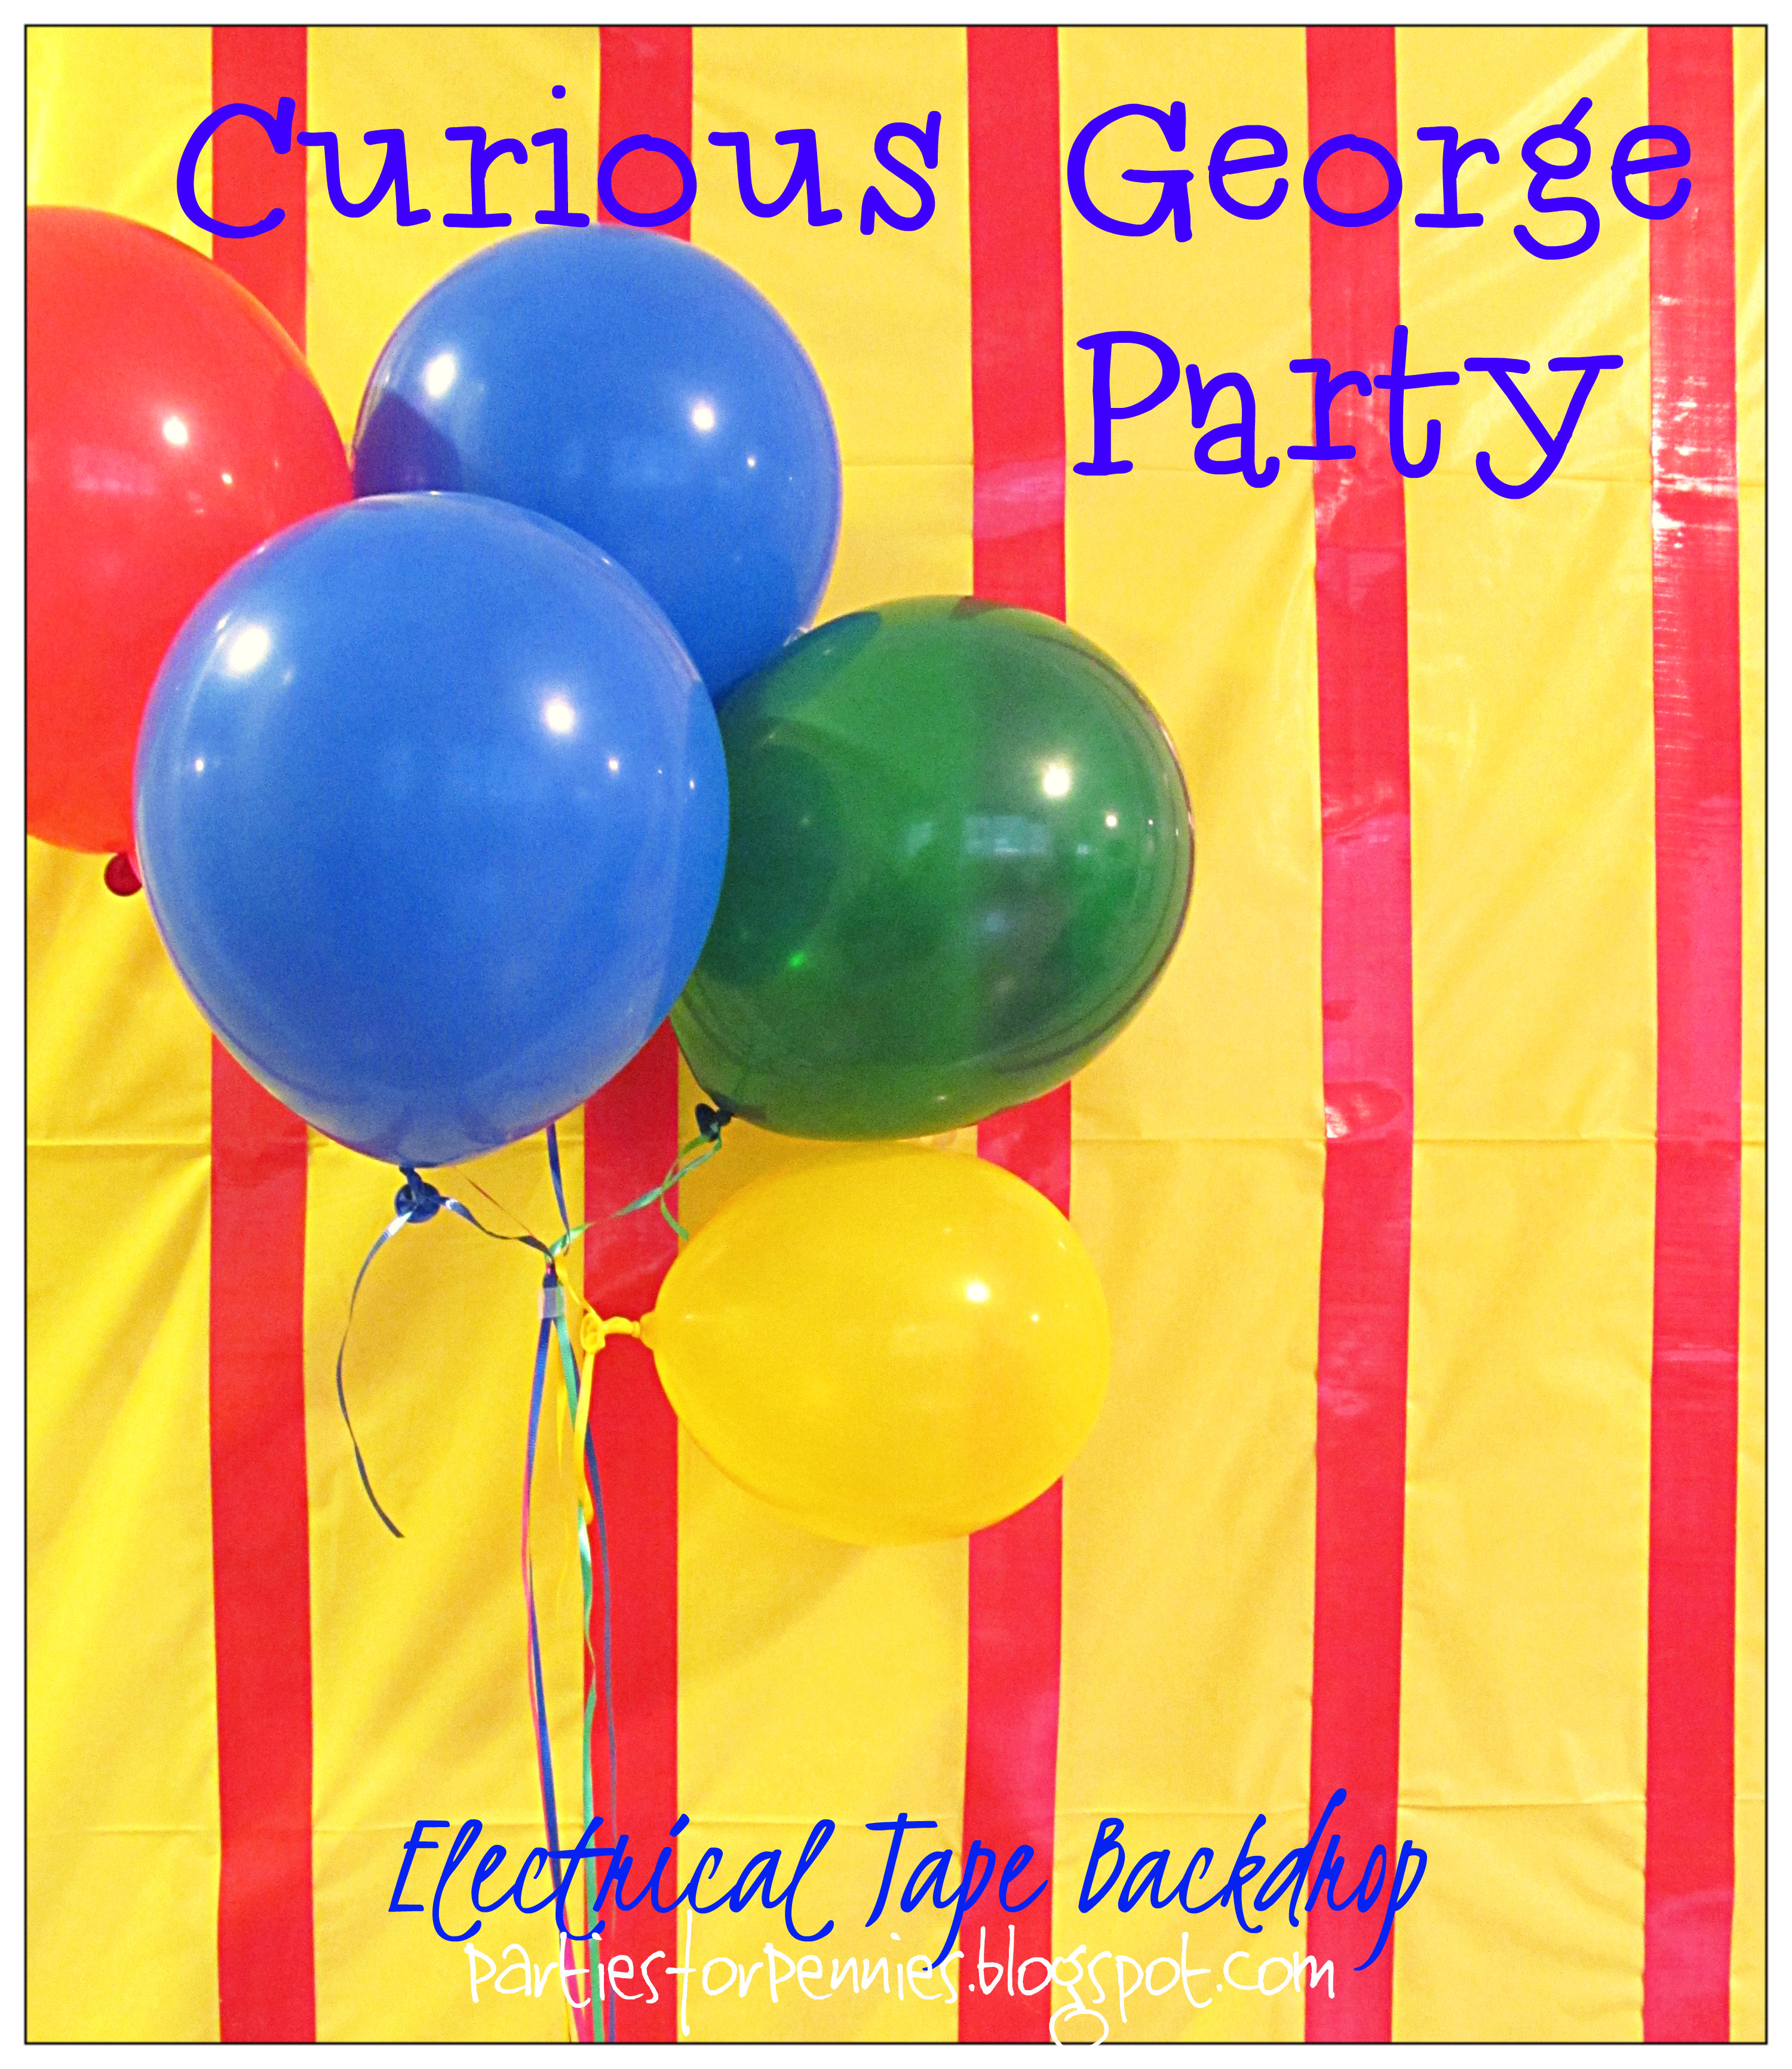 Curious George Backdrop by PartiesforPennies.com